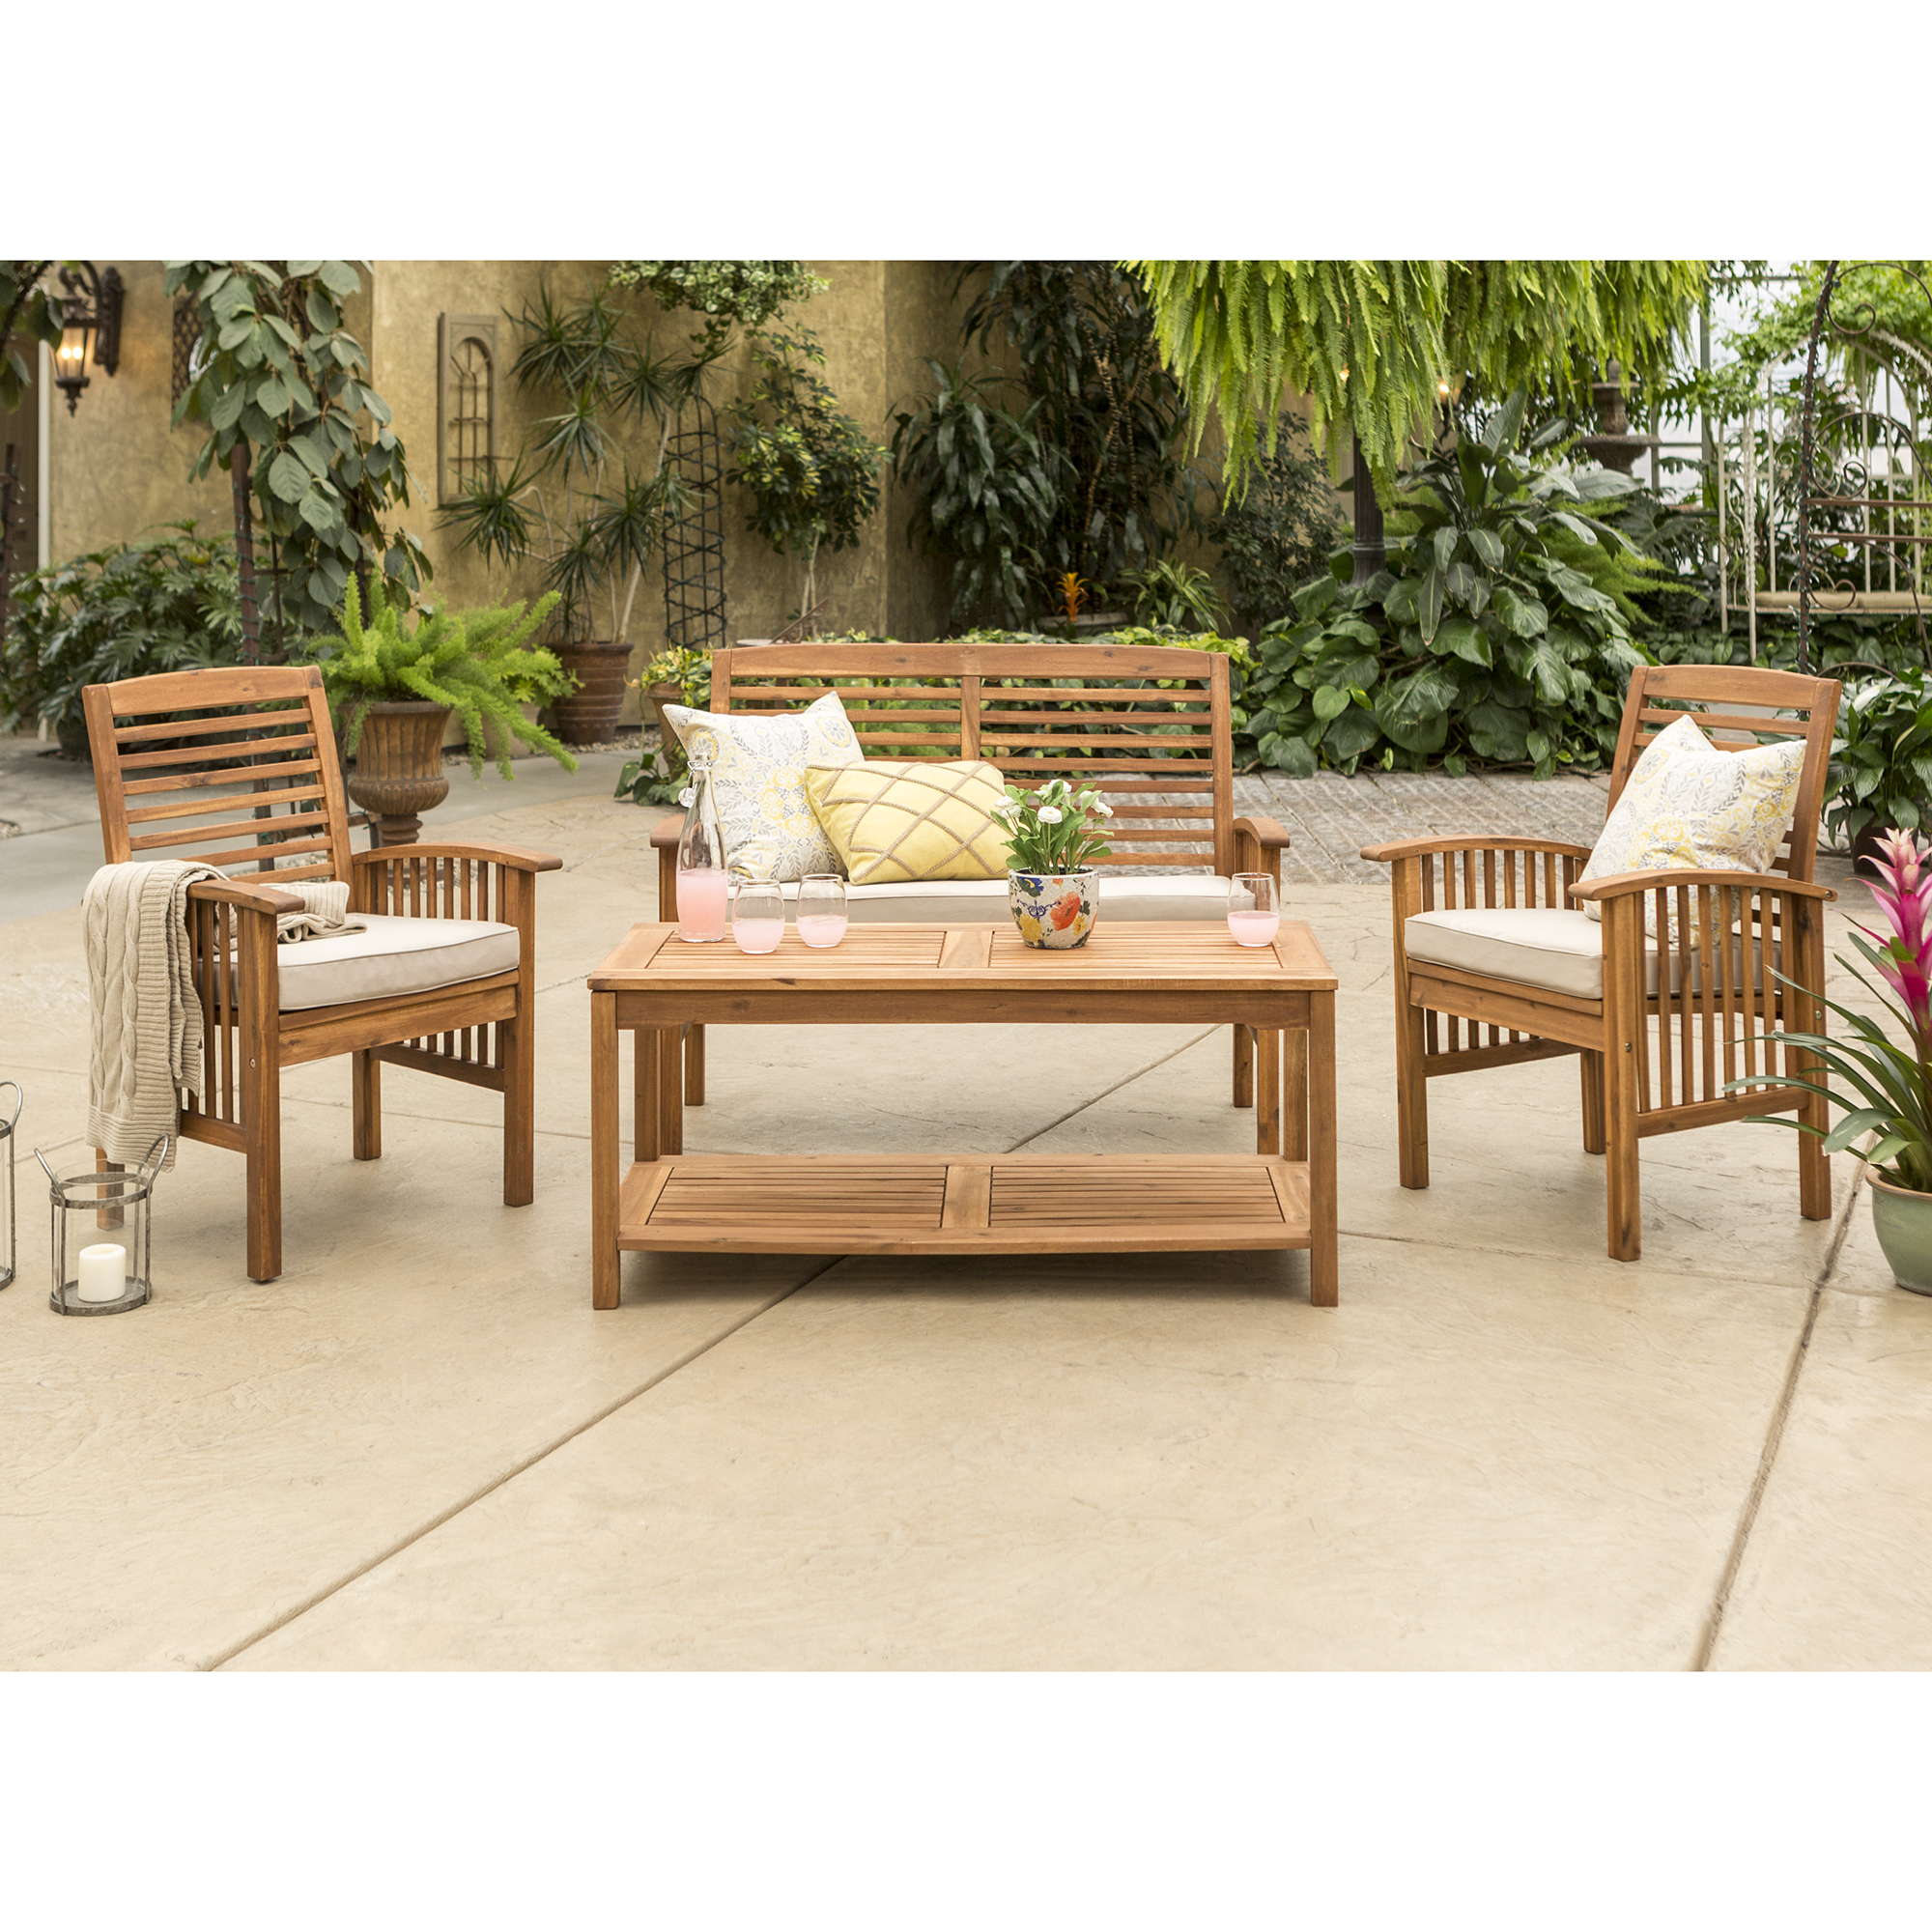 Manor Park 4-Piece Acacia Wood Outdoor Patio Conversation Set - Brown